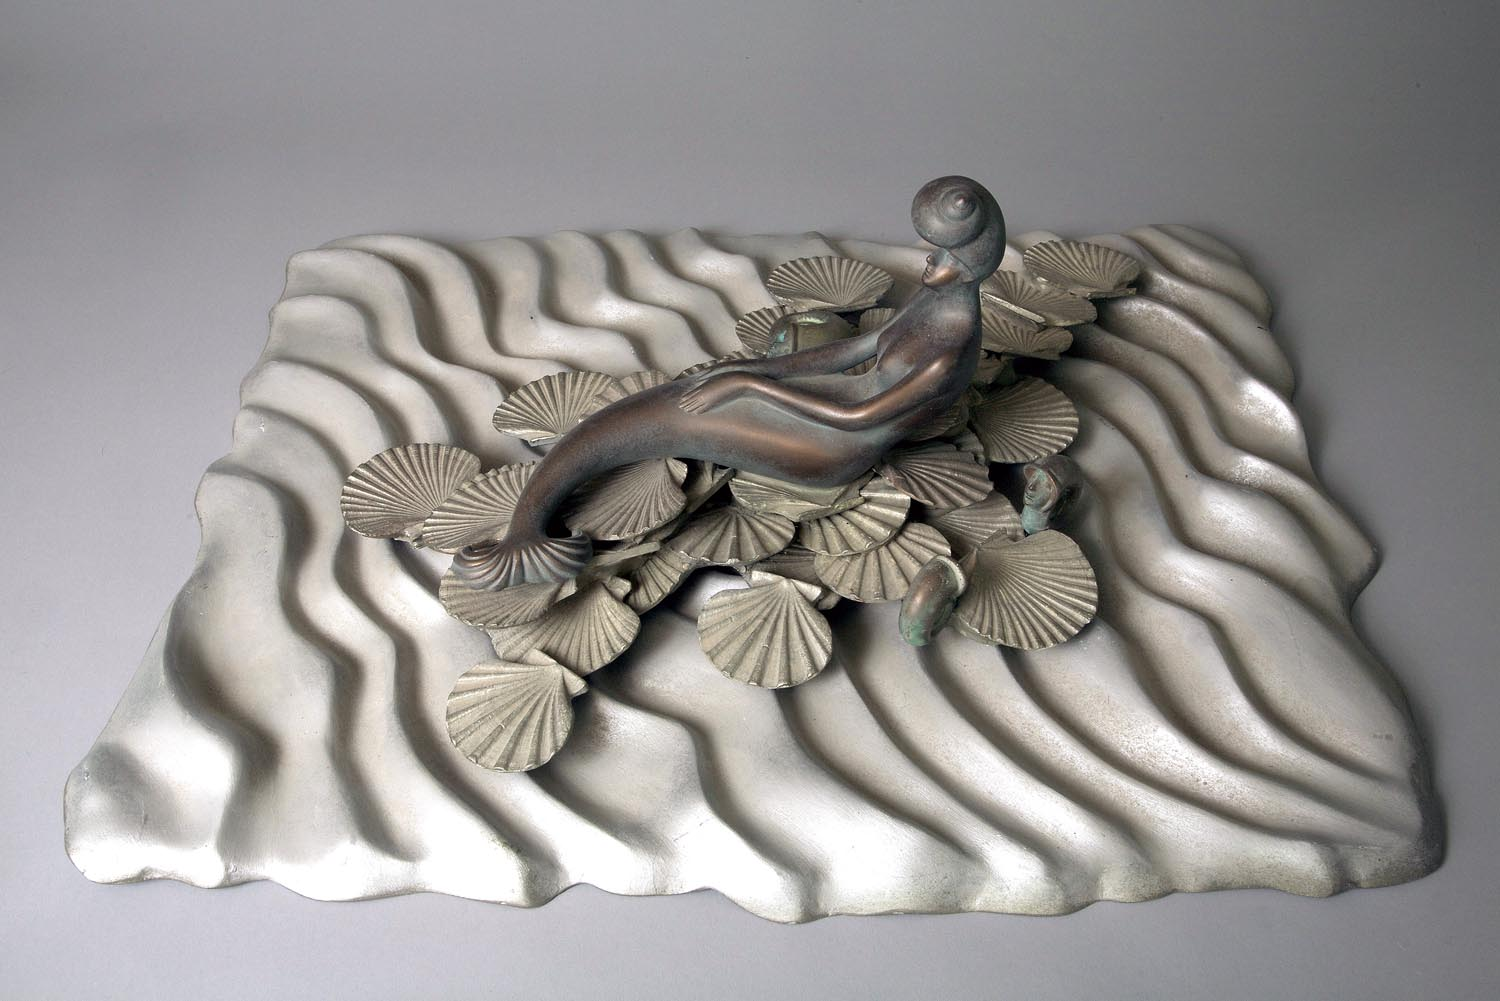 34 - Sirena & Consorts in a Sea of Shells